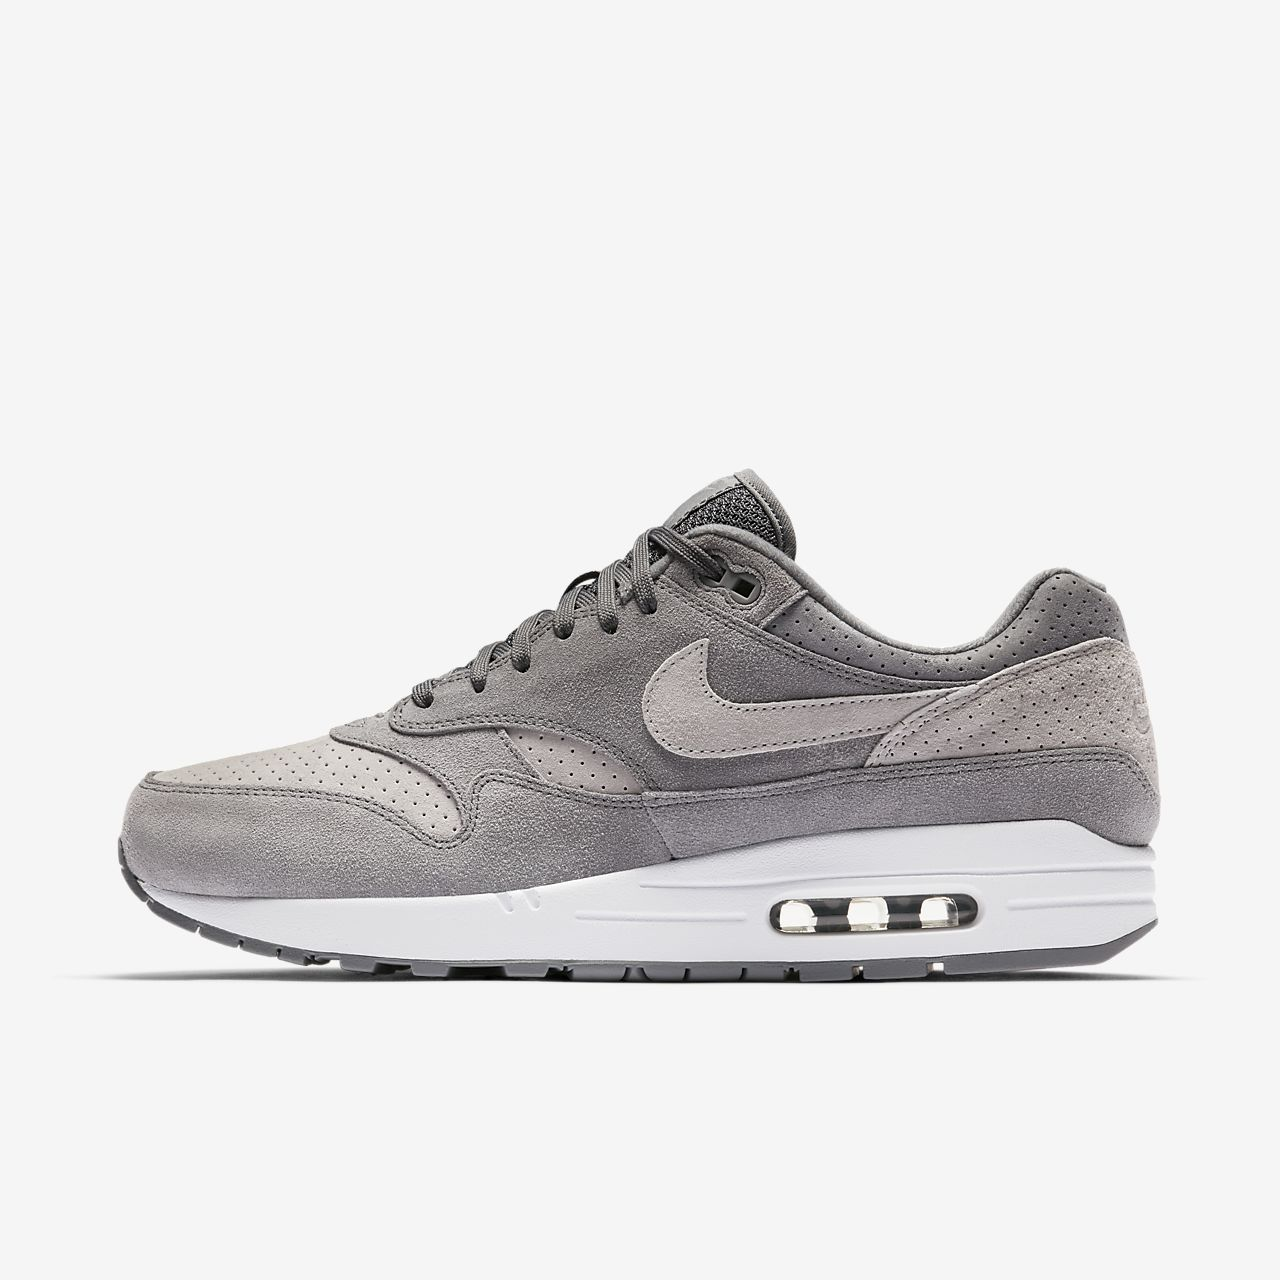 air max 1 premium grey nz